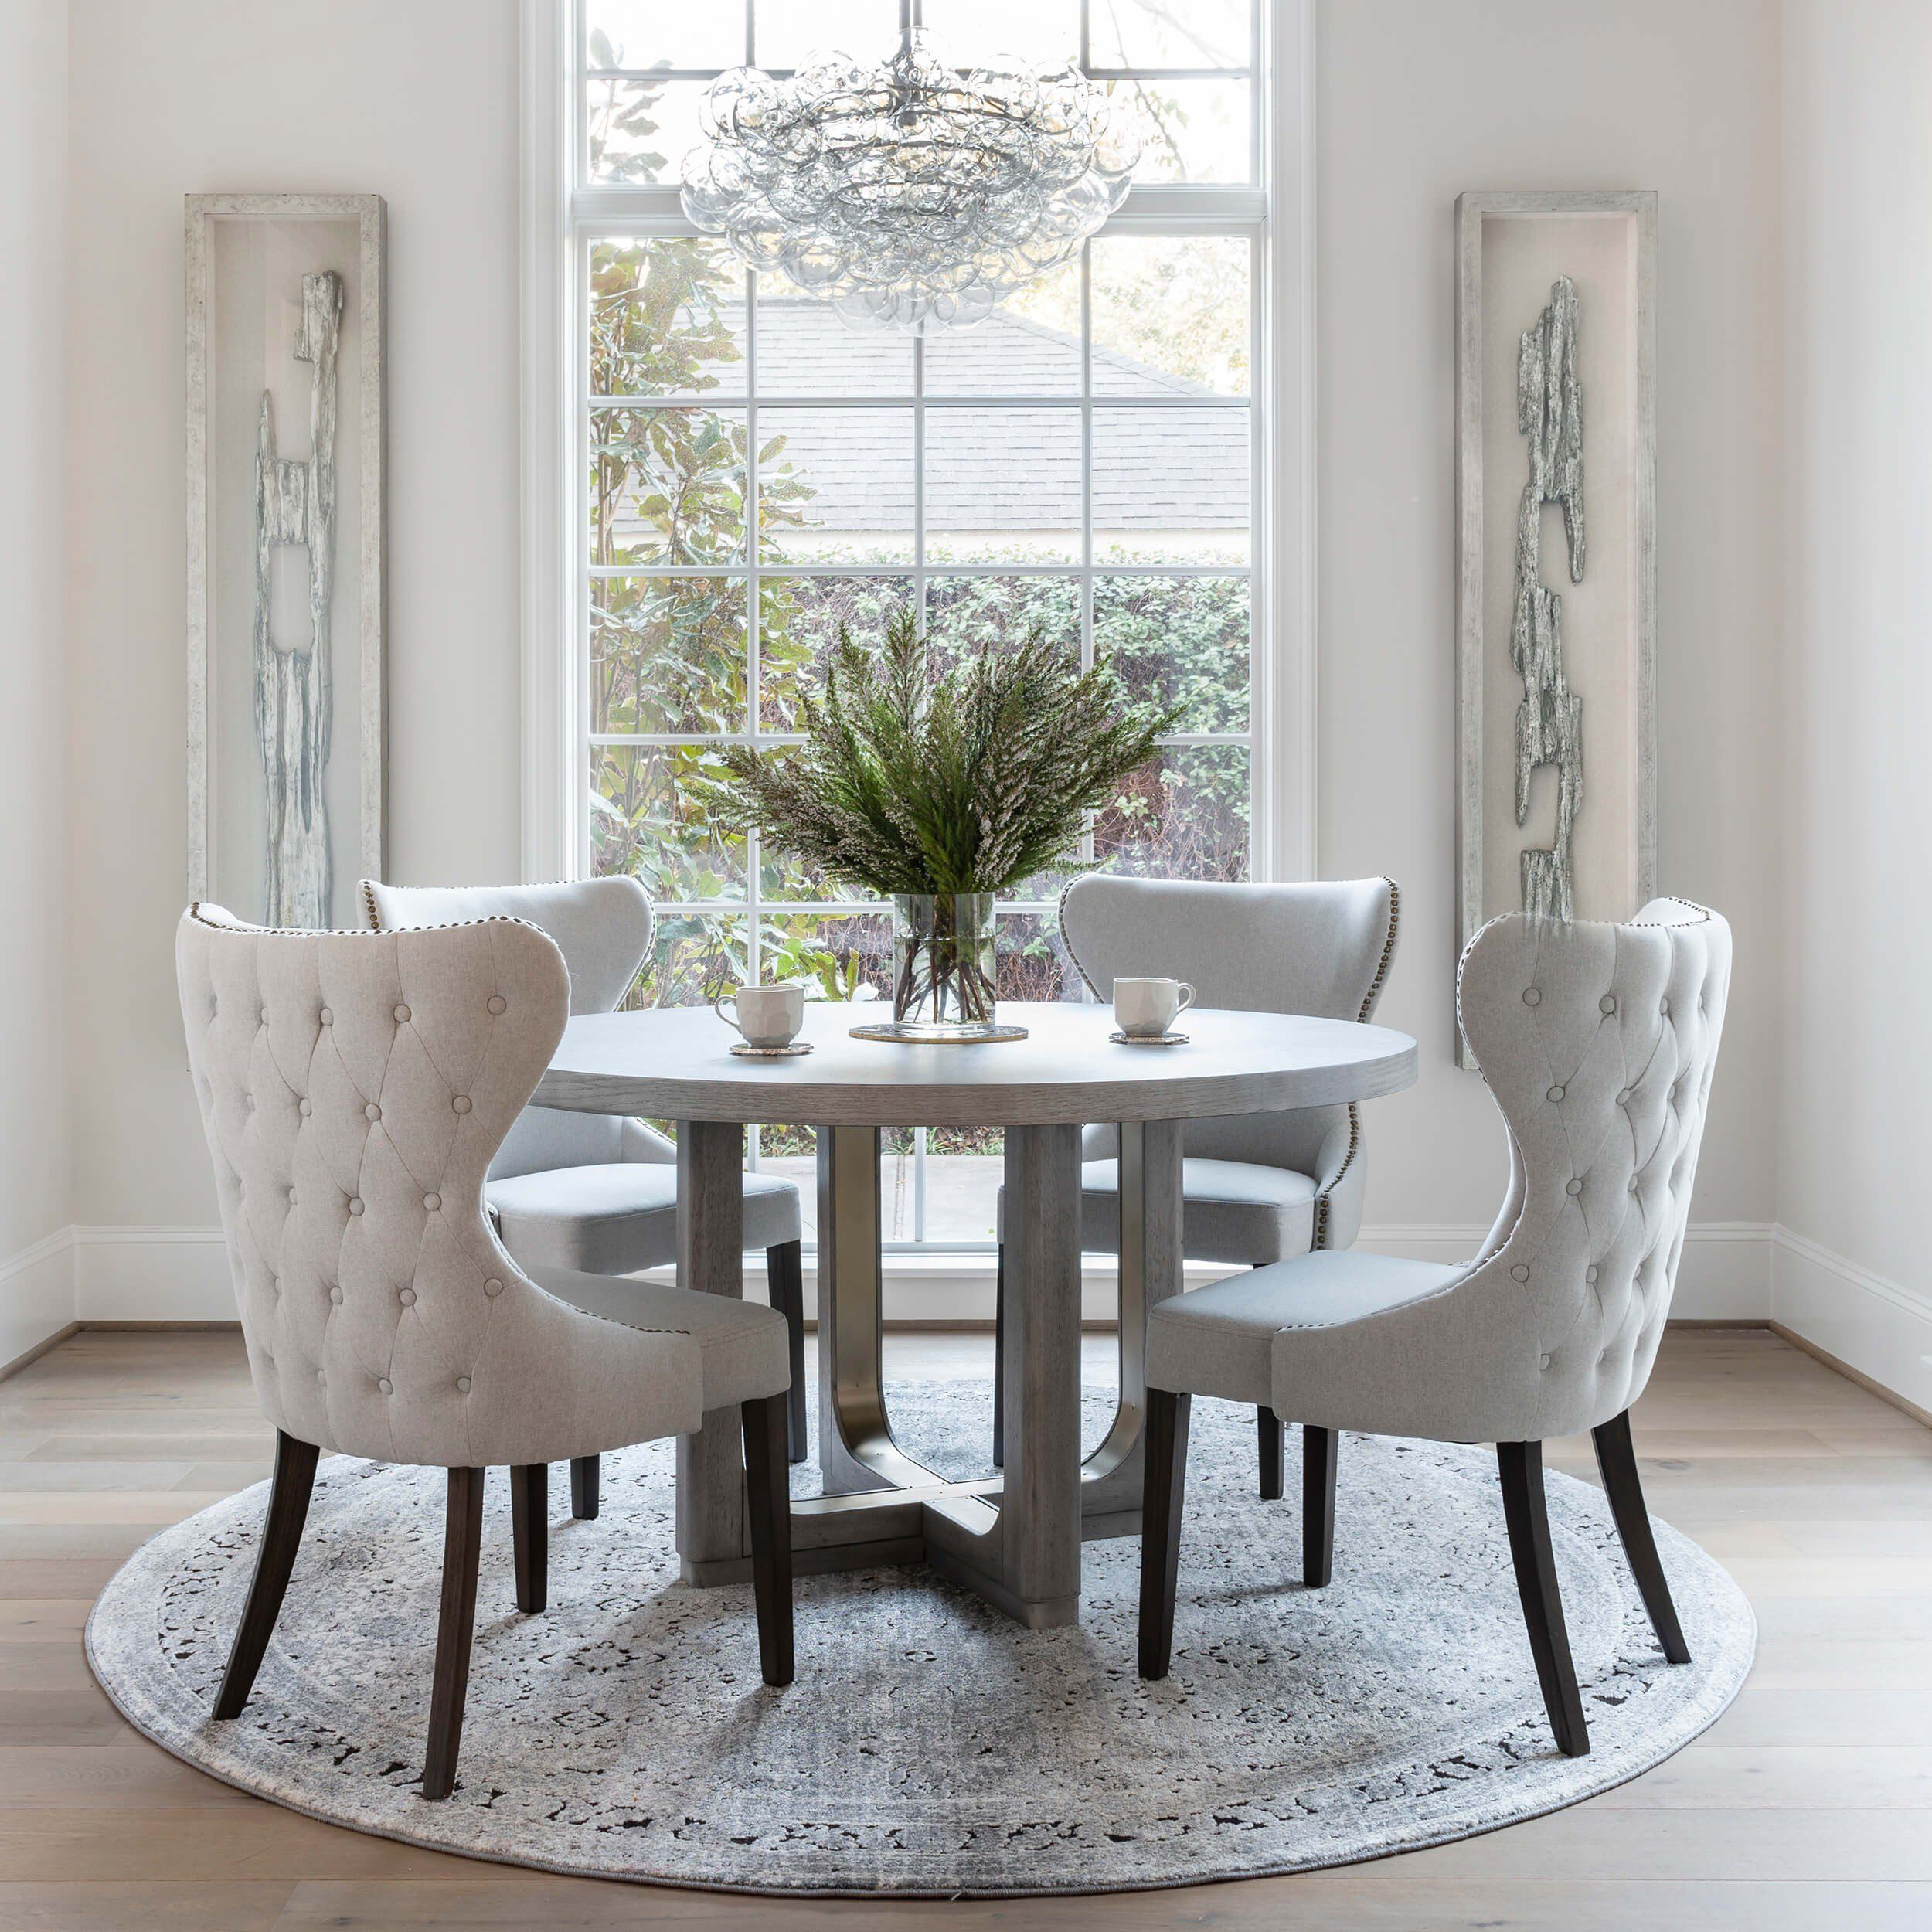 Ariana Dining Chair, Light Grey, Brass Nailheads